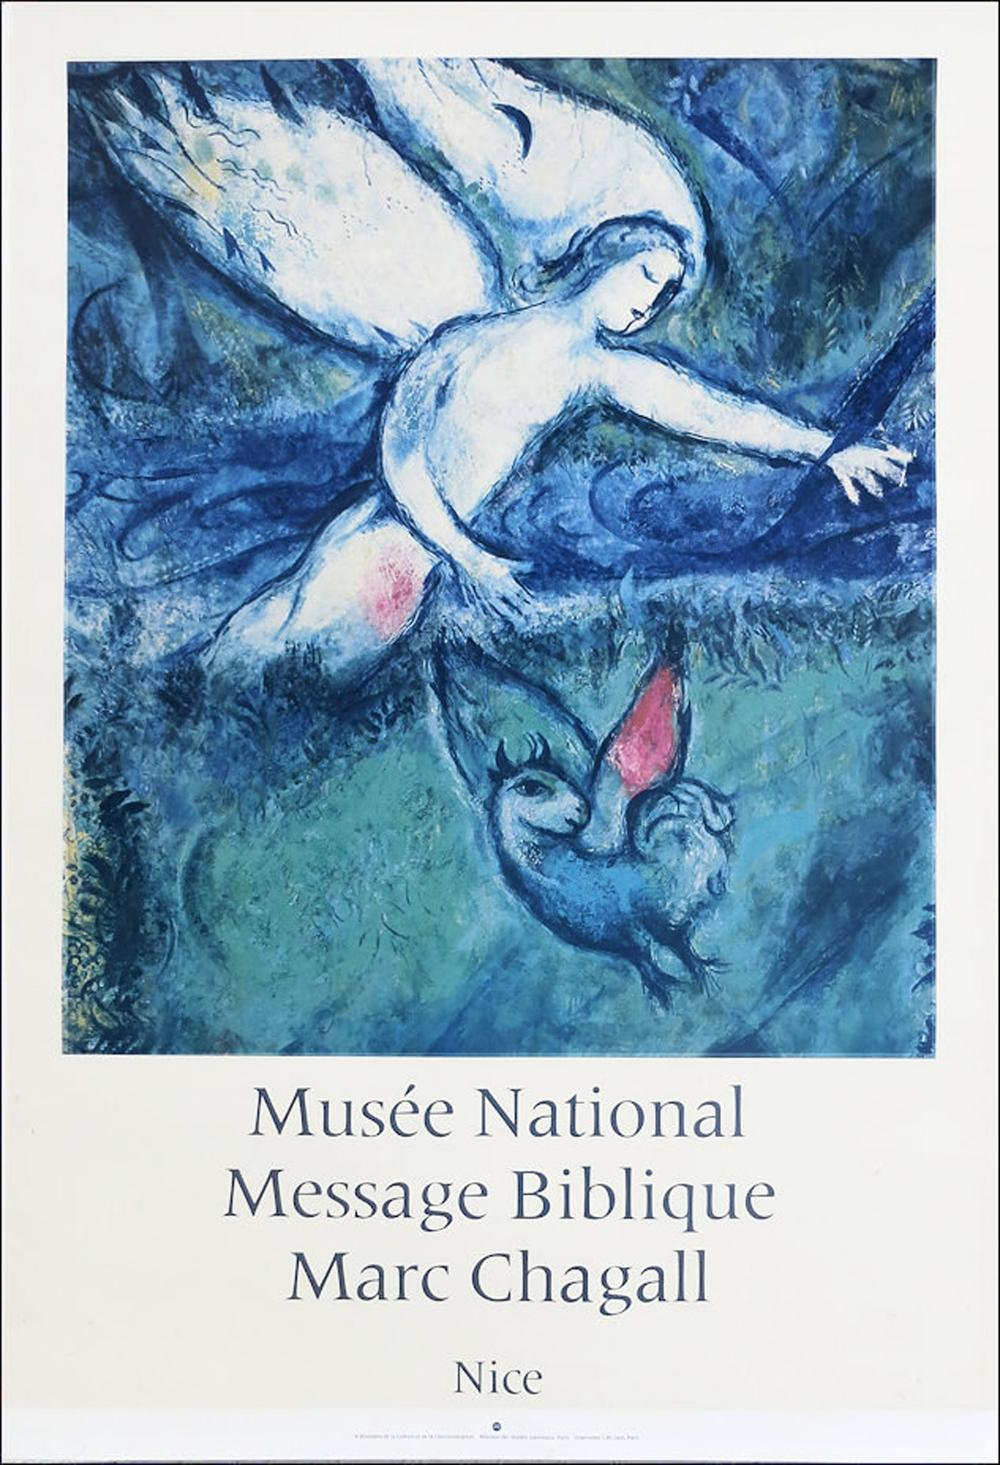 Marc Chagall, Musee National - Message Biblique, Nice, Poster